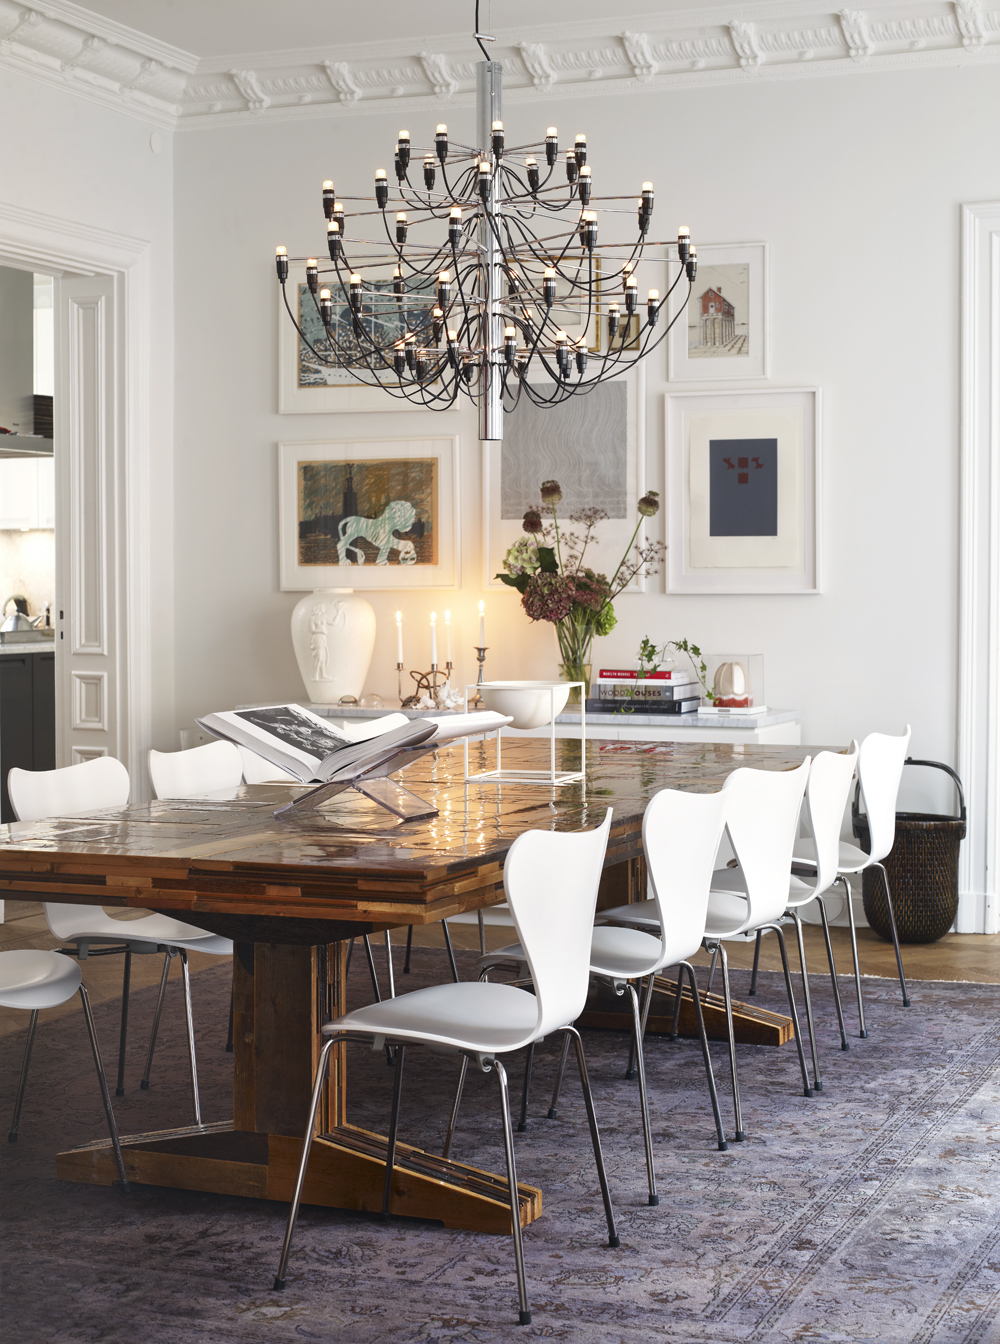 Isa s klassiska hem l genhets inspiration - Stylish home design inspiration ideas in different styles ...